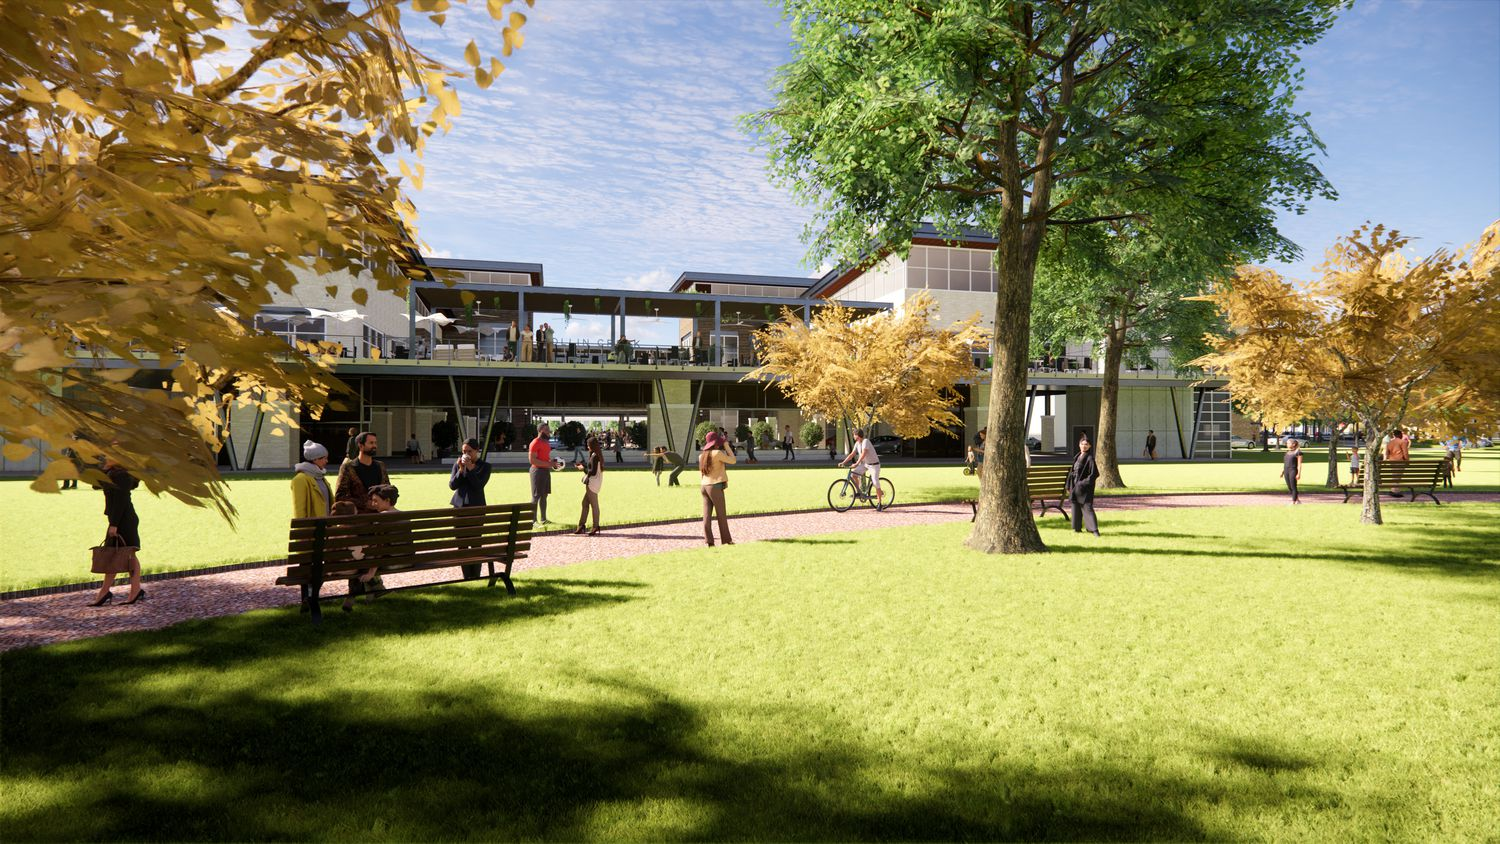 A planned restaurant terrace overlooks the park in the Collin Creek redevelpment.